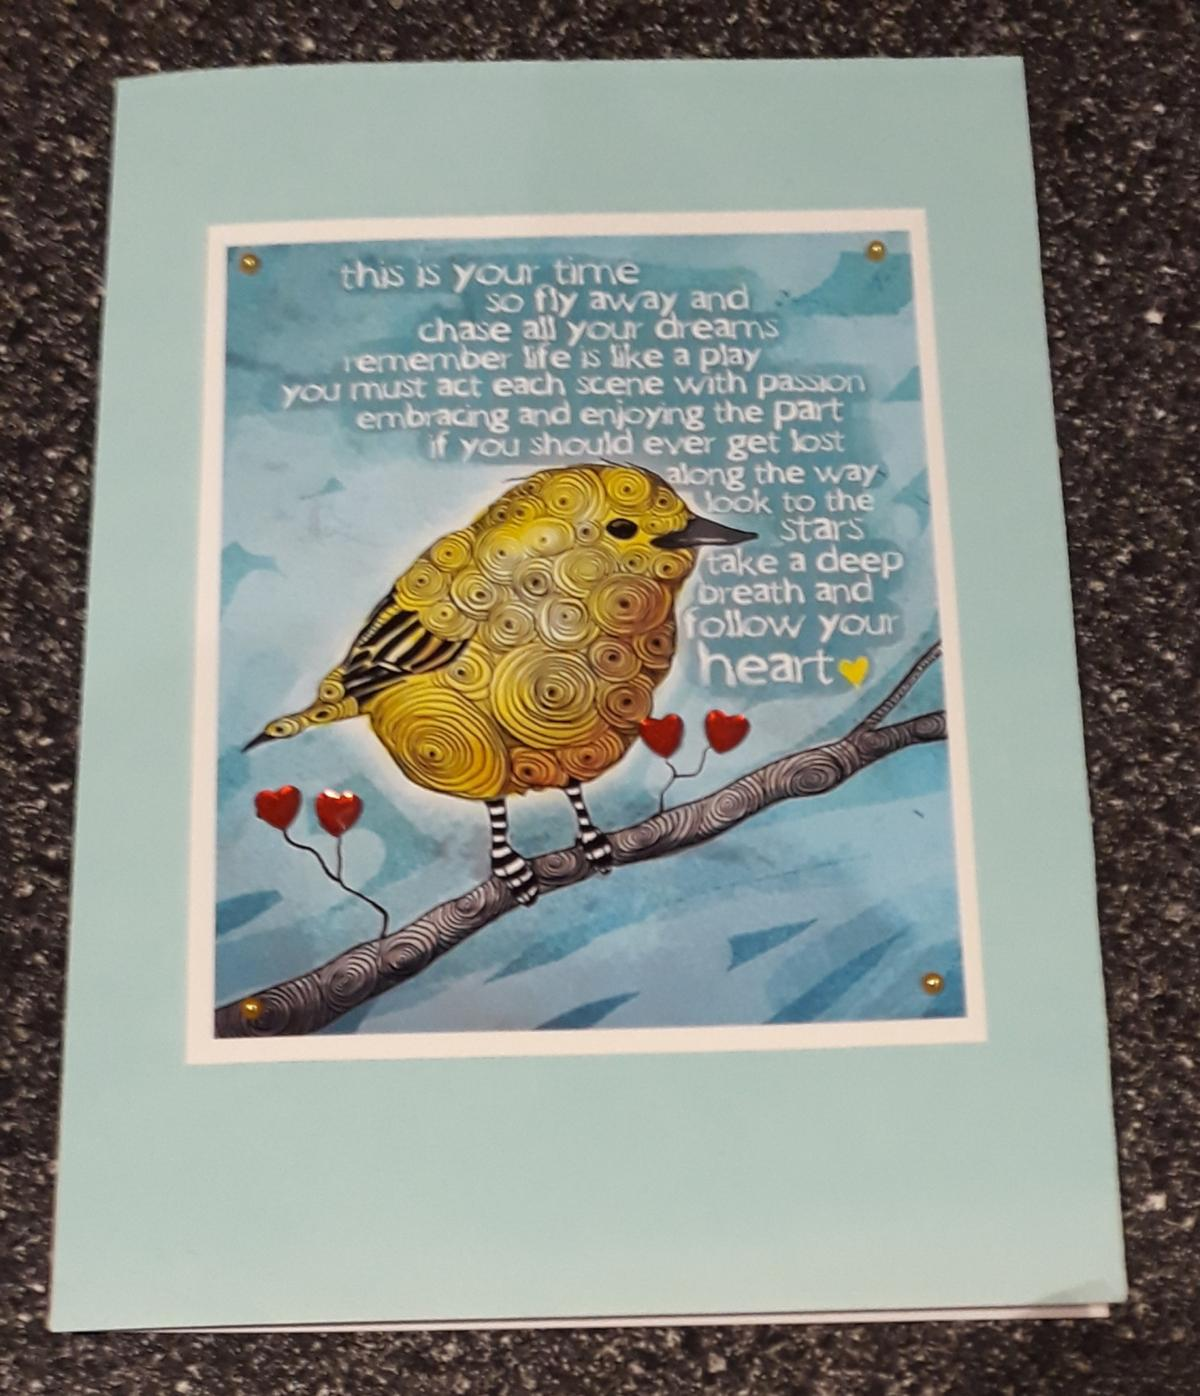 *POSTAGE IS AVAILABLE* A HANDMADE CARD LOVELY QUOTE BLANK INSIDE FOR YOUR PERSONAL MESSAGE. COMES IN A SEALED PROTECTIVE BAG.